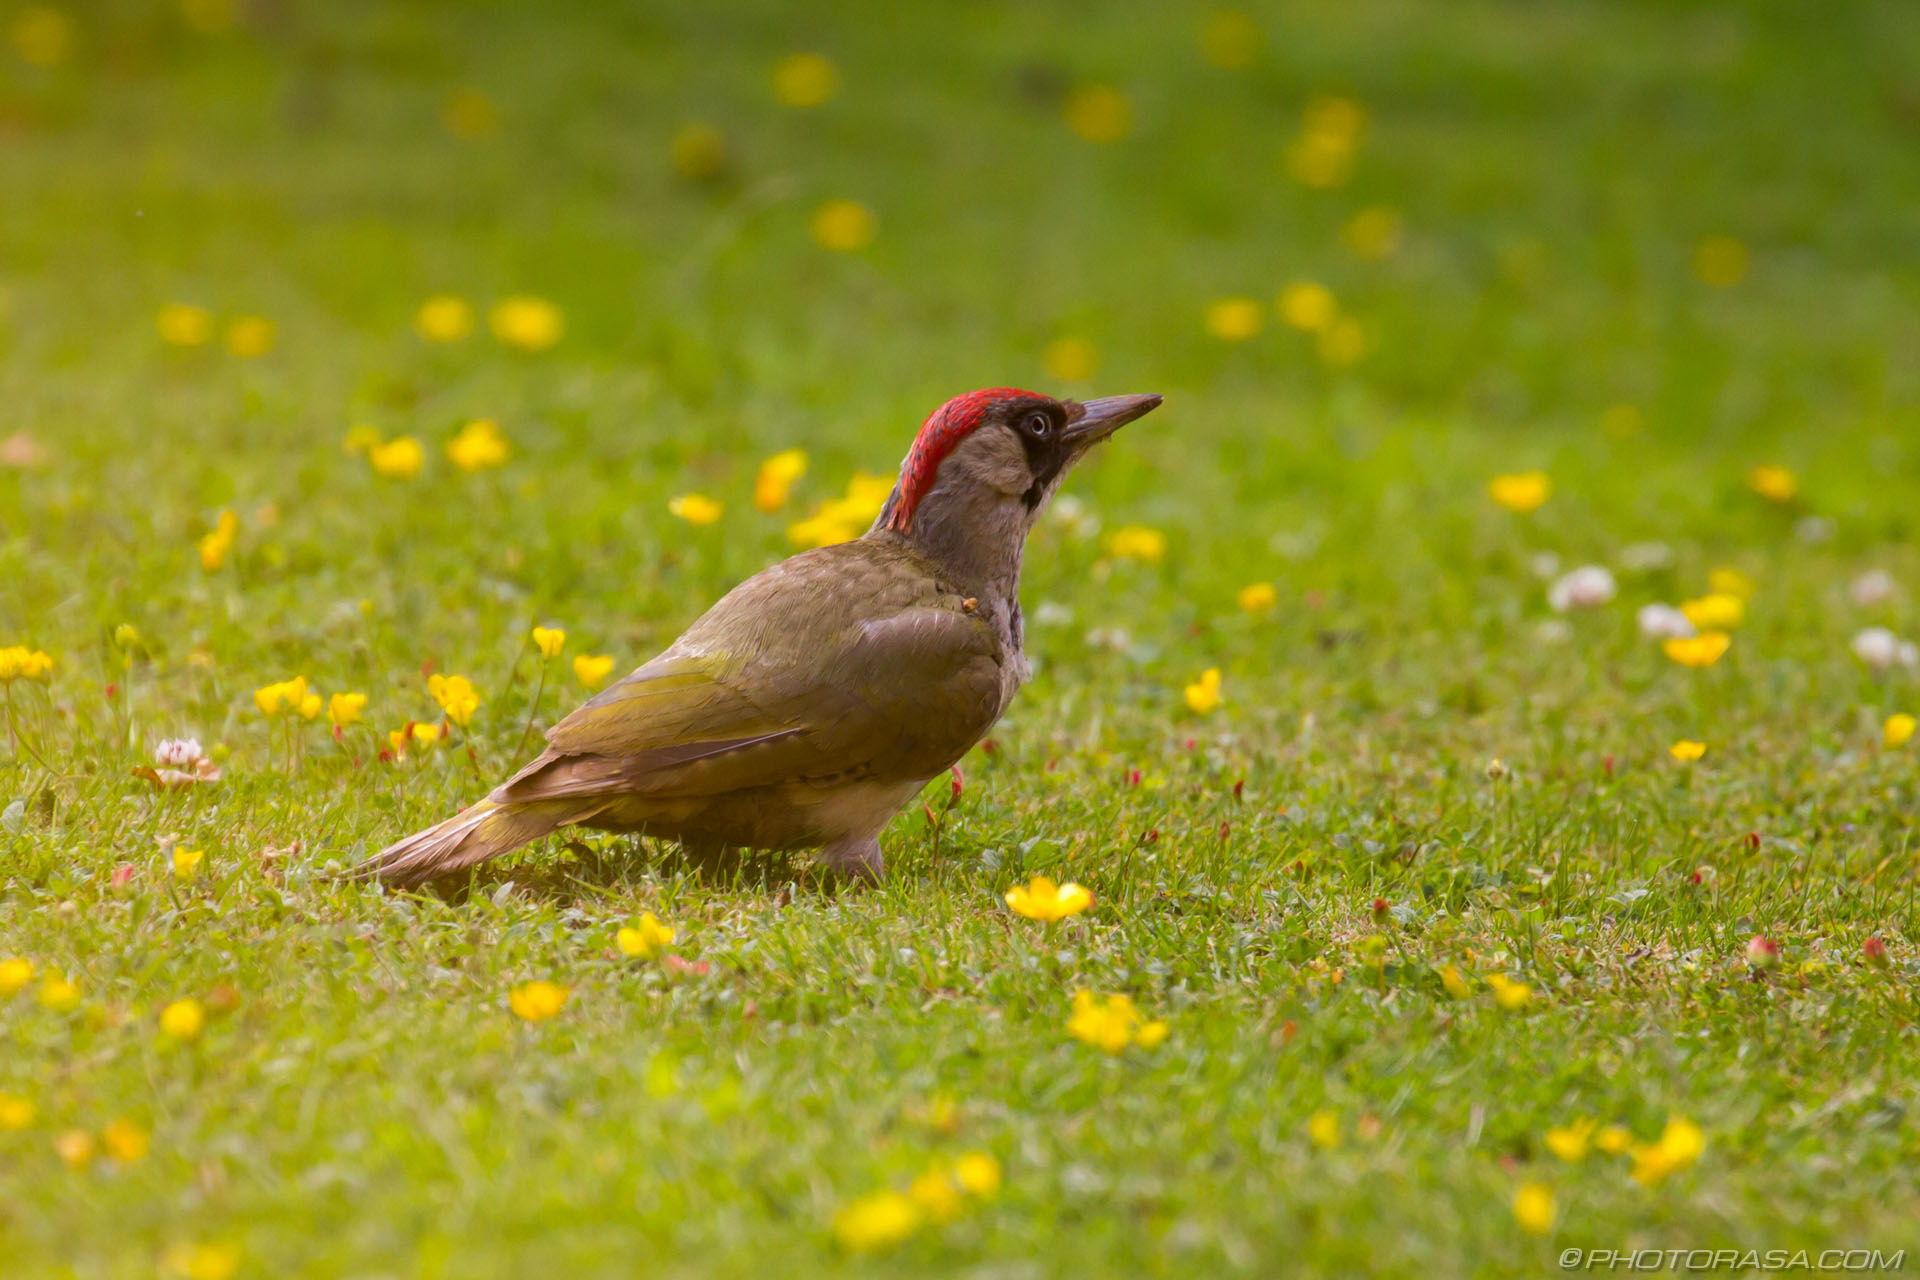 https://photorasa.com/green-woodpecker/woodpecker-among-the-buttercups/